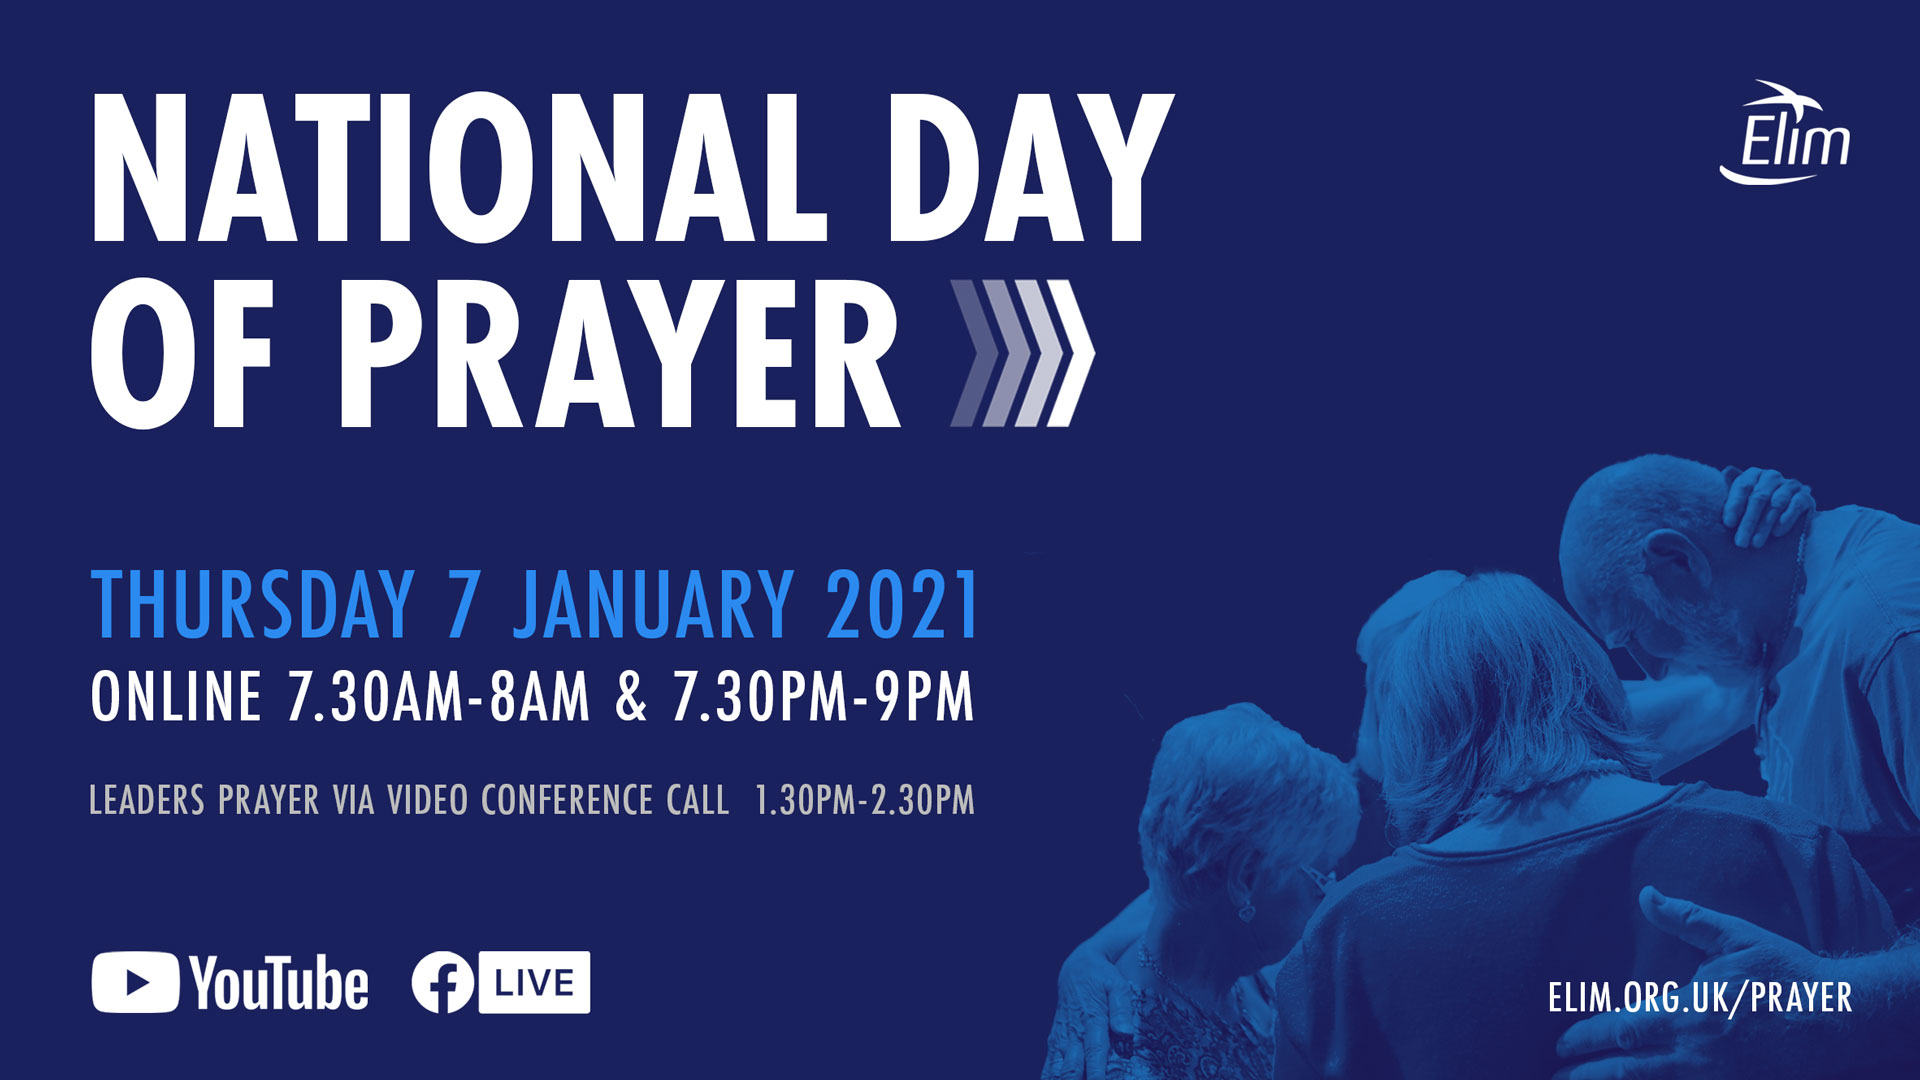 Page(/announcements/20210107-Elim-National-Day-of-Prayer.markdown)